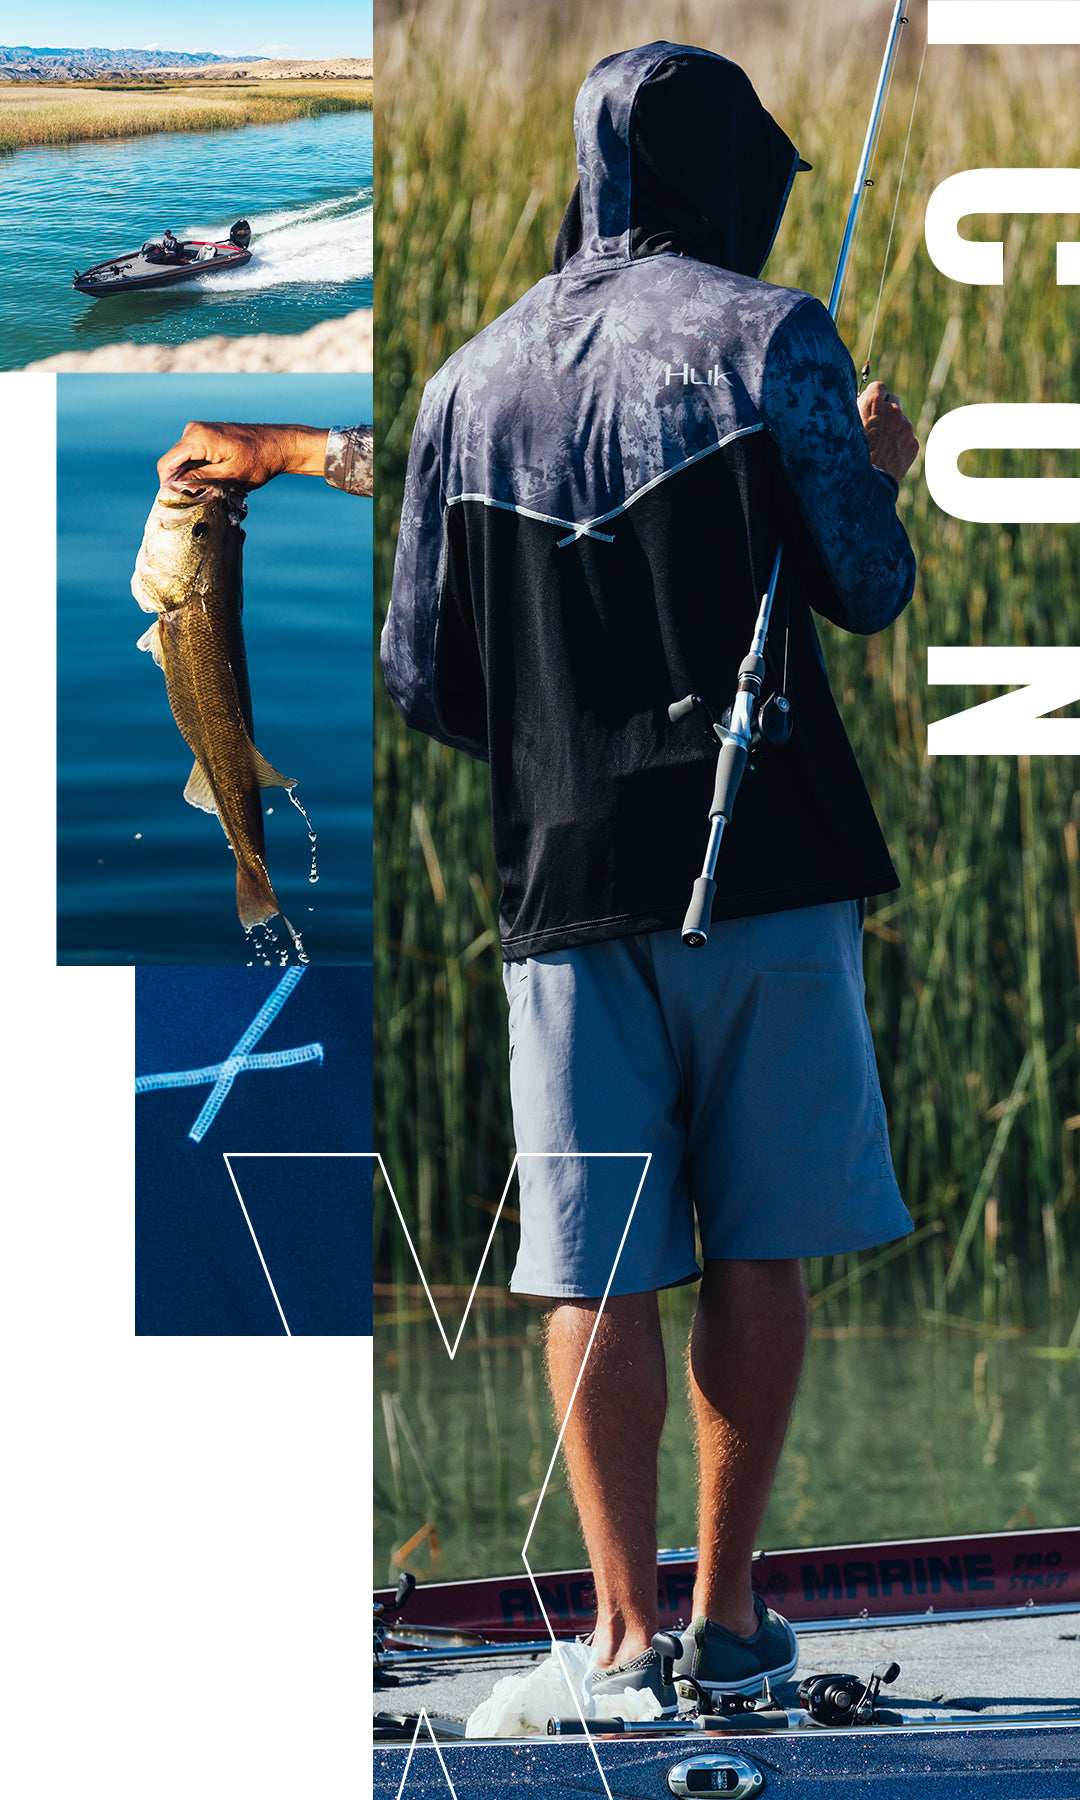 5cc536065769f Performance Fishing Apparel - Sun Protective - All Weather